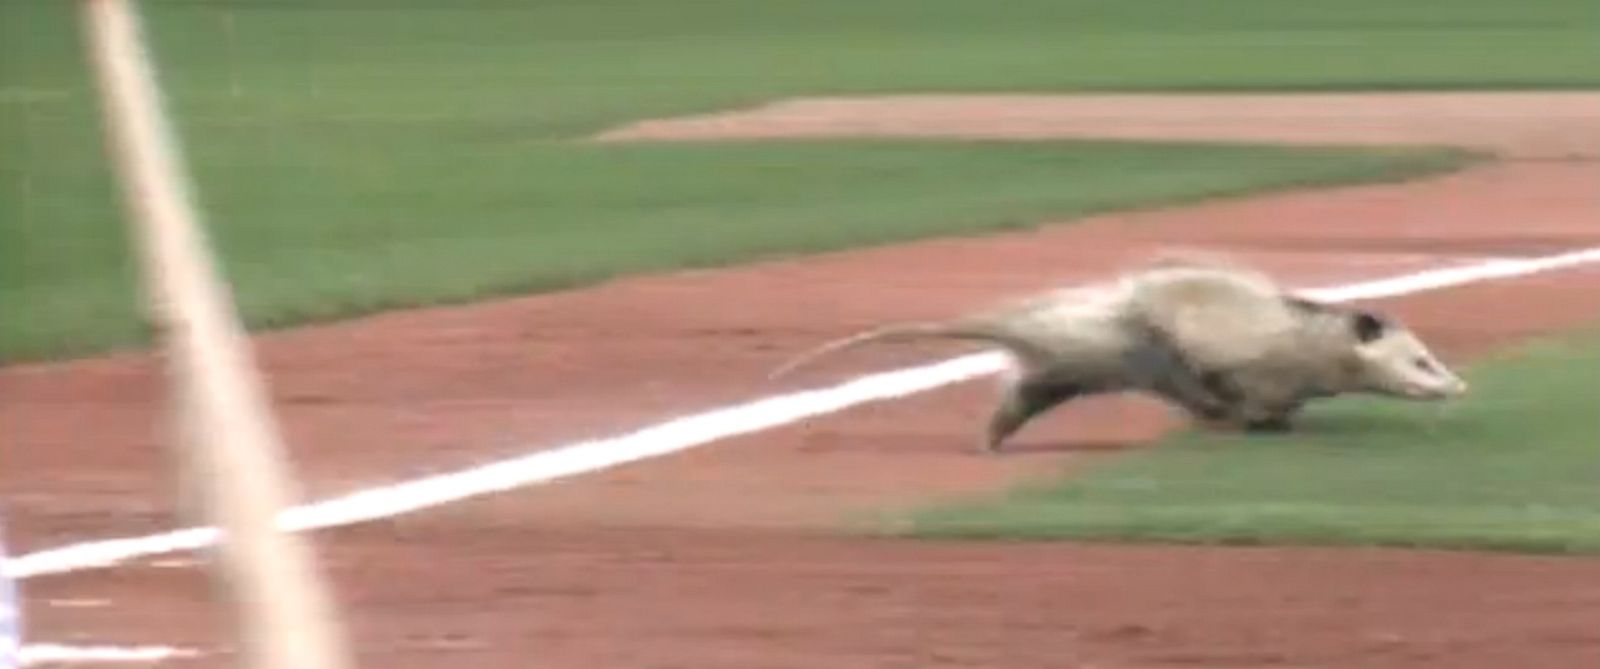 PHOTO: An opossum runs onto the field during a minor league baseball game between the Quad Cities River Bandits and Clinton LumberKings in Davenport, Iowa, July 30, 2014.